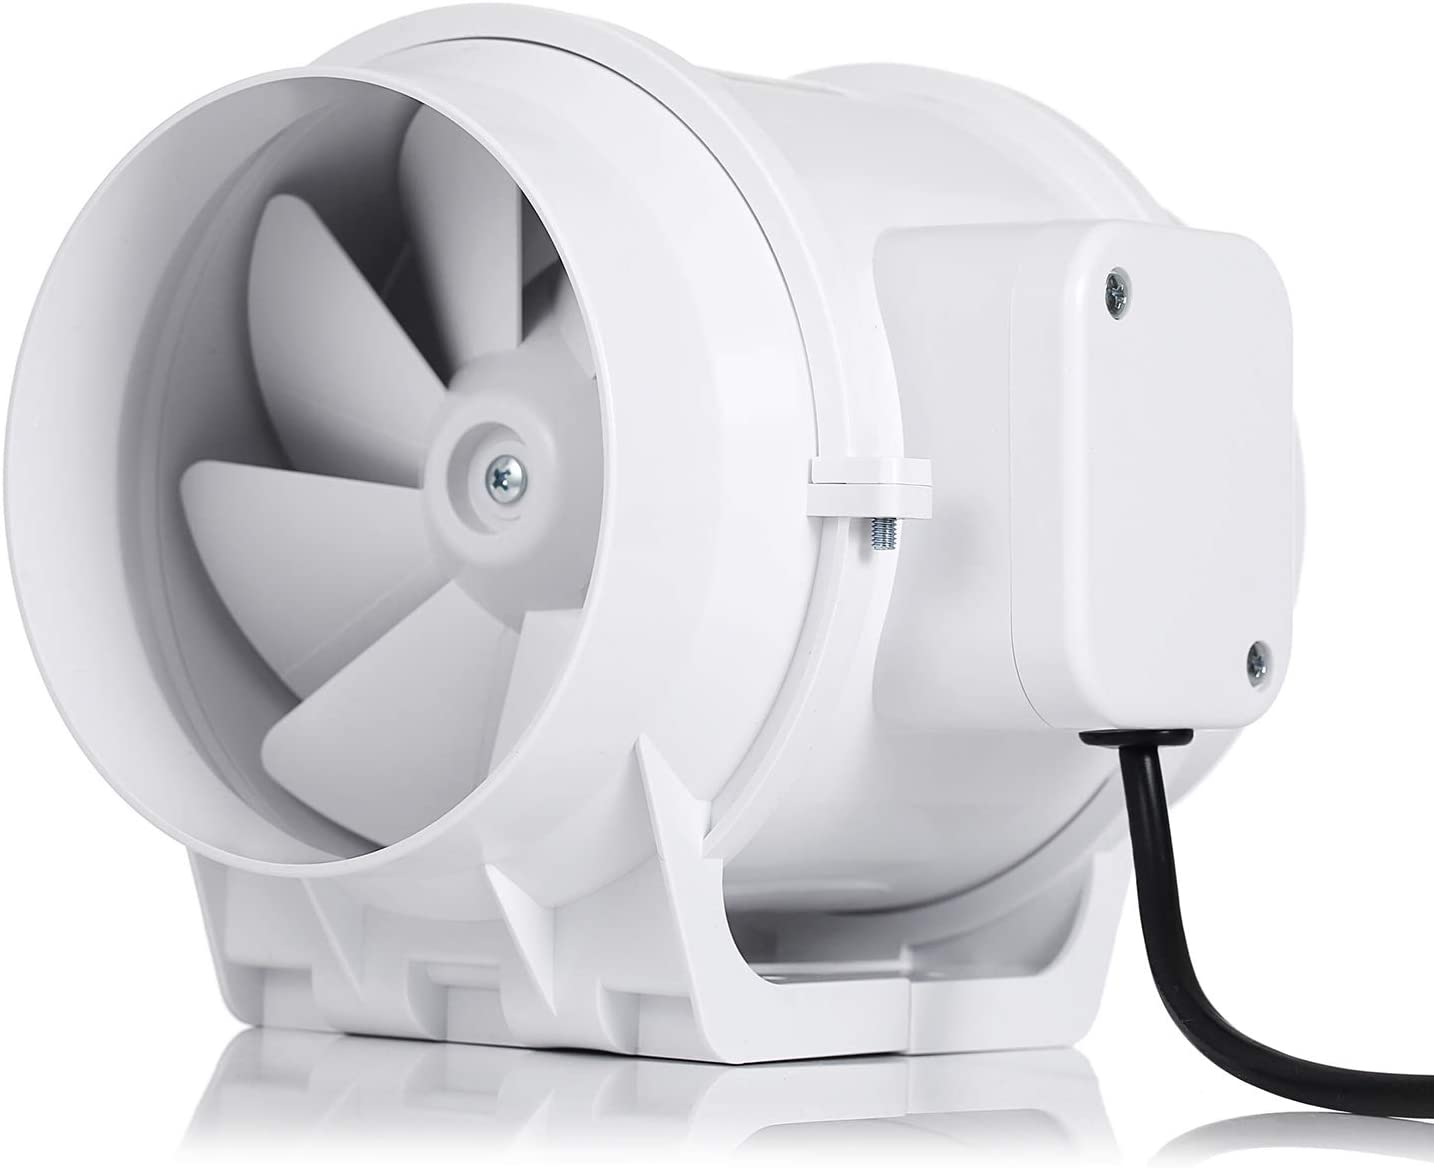 Hon&Guan 20 Inch Extractor Fan High Efficiency Mixed Flow Ventilation System  Exhaust Air for Bathroom Kitchen Inline Duct Fan S Series